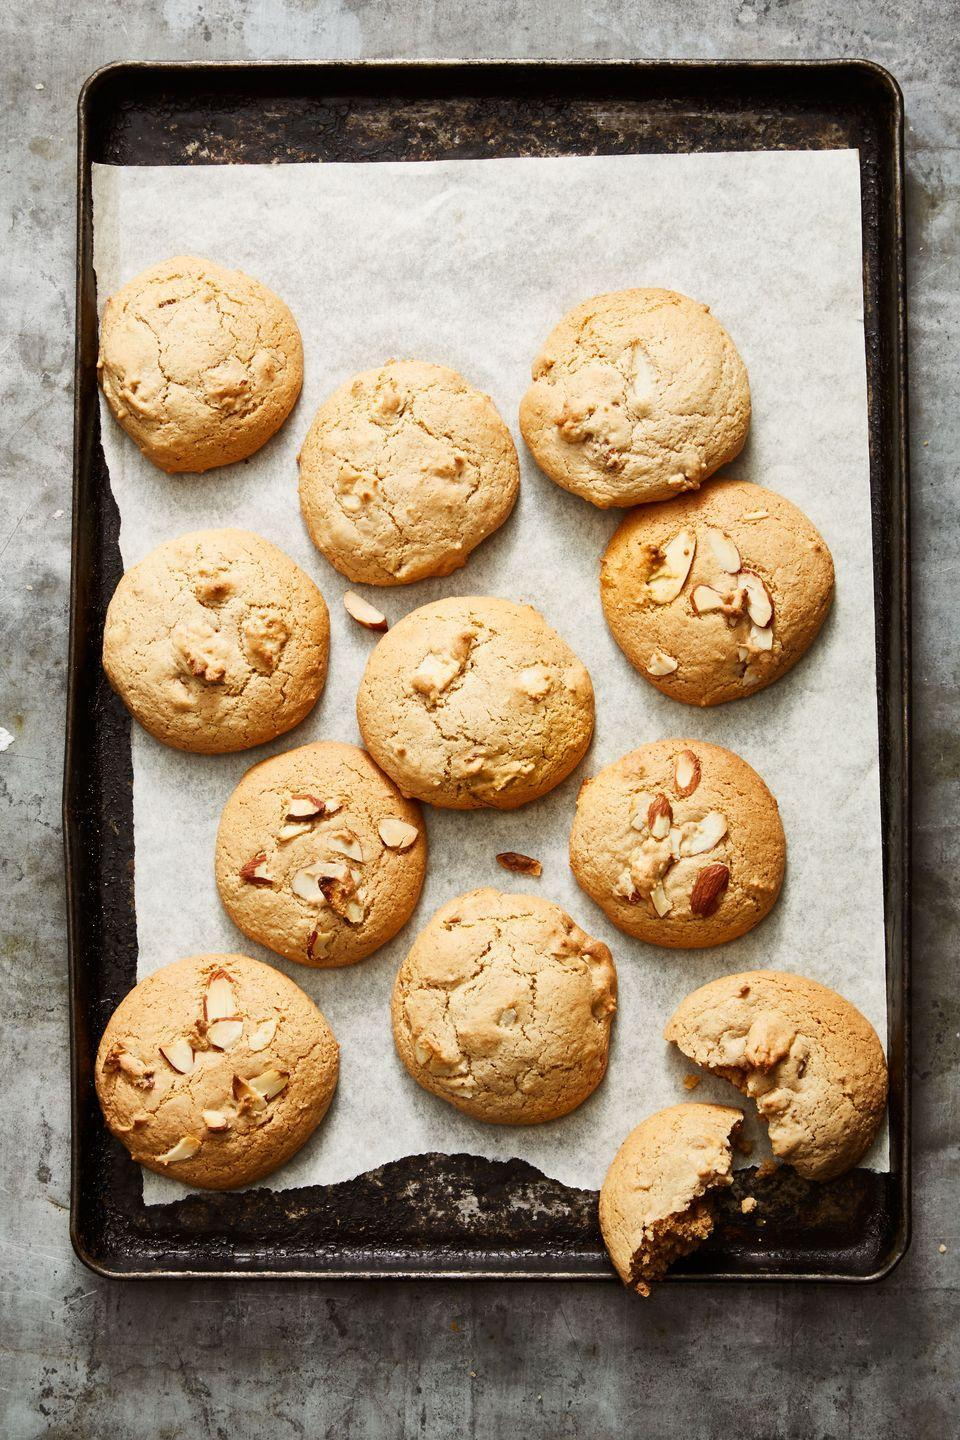 """<p>Use any type of nut butter (peanut, almond, cashew, whatever you like!) to bake these under-30-minute treats.</p><p><em><a href=""""https://www.goodhousekeeping.com/food-recipes/a34659654/chunky-nut-butter-cookies-recipe/"""" rel=""""nofollow noopener"""" target=""""_blank"""" data-ylk=""""slk:Get the recipe for Chunky Nut Butter Cookies »"""" class=""""link rapid-noclick-resp"""">Get the recipe for Chunky Nut Butter Cookies »</a></em></p>"""